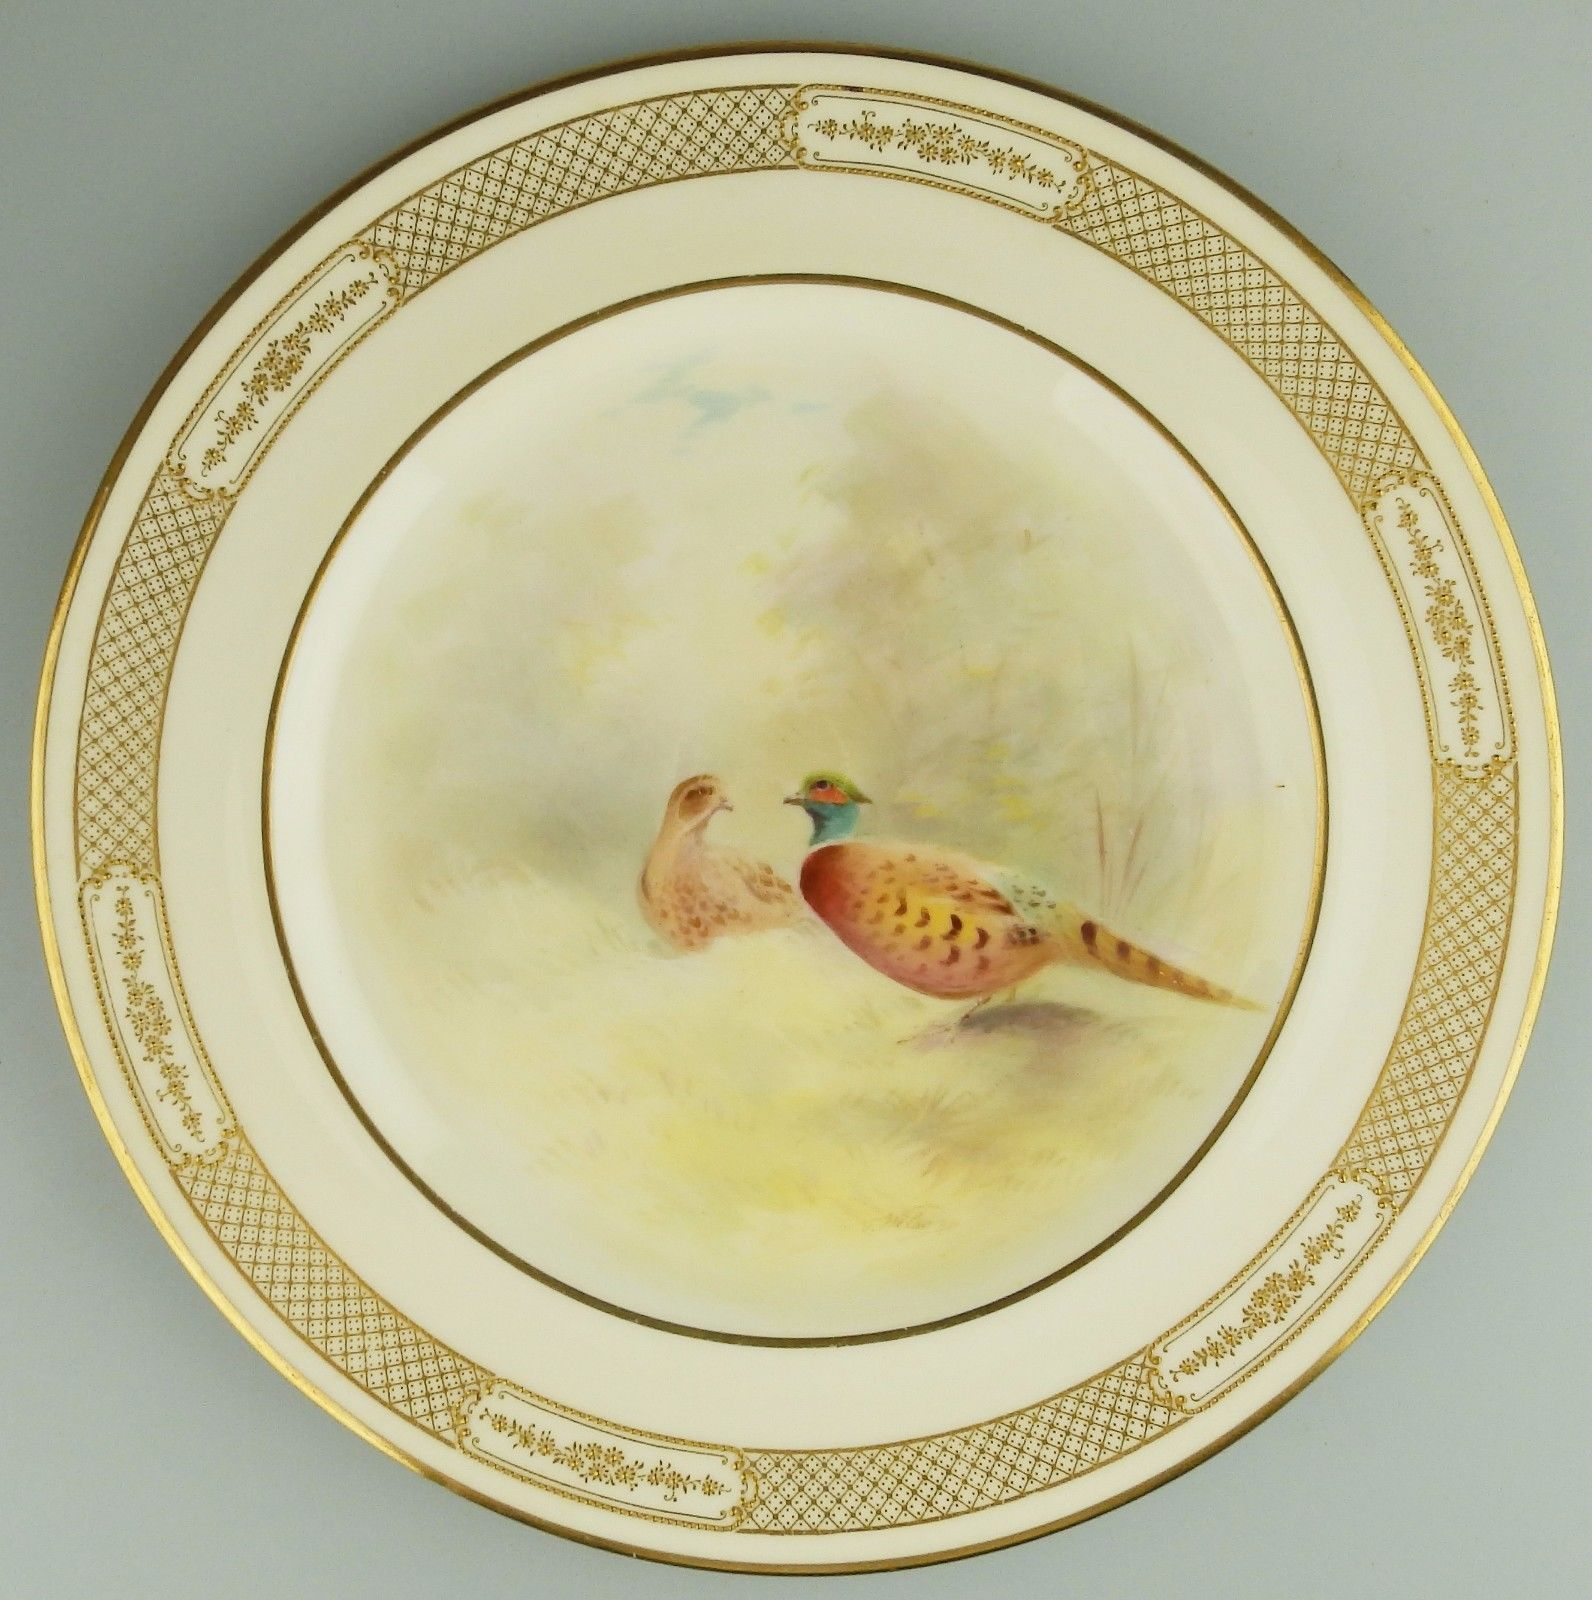 Royal Doulton Antique Porcelain Good h/pu0027ted Cabinet Plate by T Wilson 2 C.1900  sc 1 st  Bonanza & Royal Doulton Antique Porcelain Good h/pu0027ted and 39 similar items